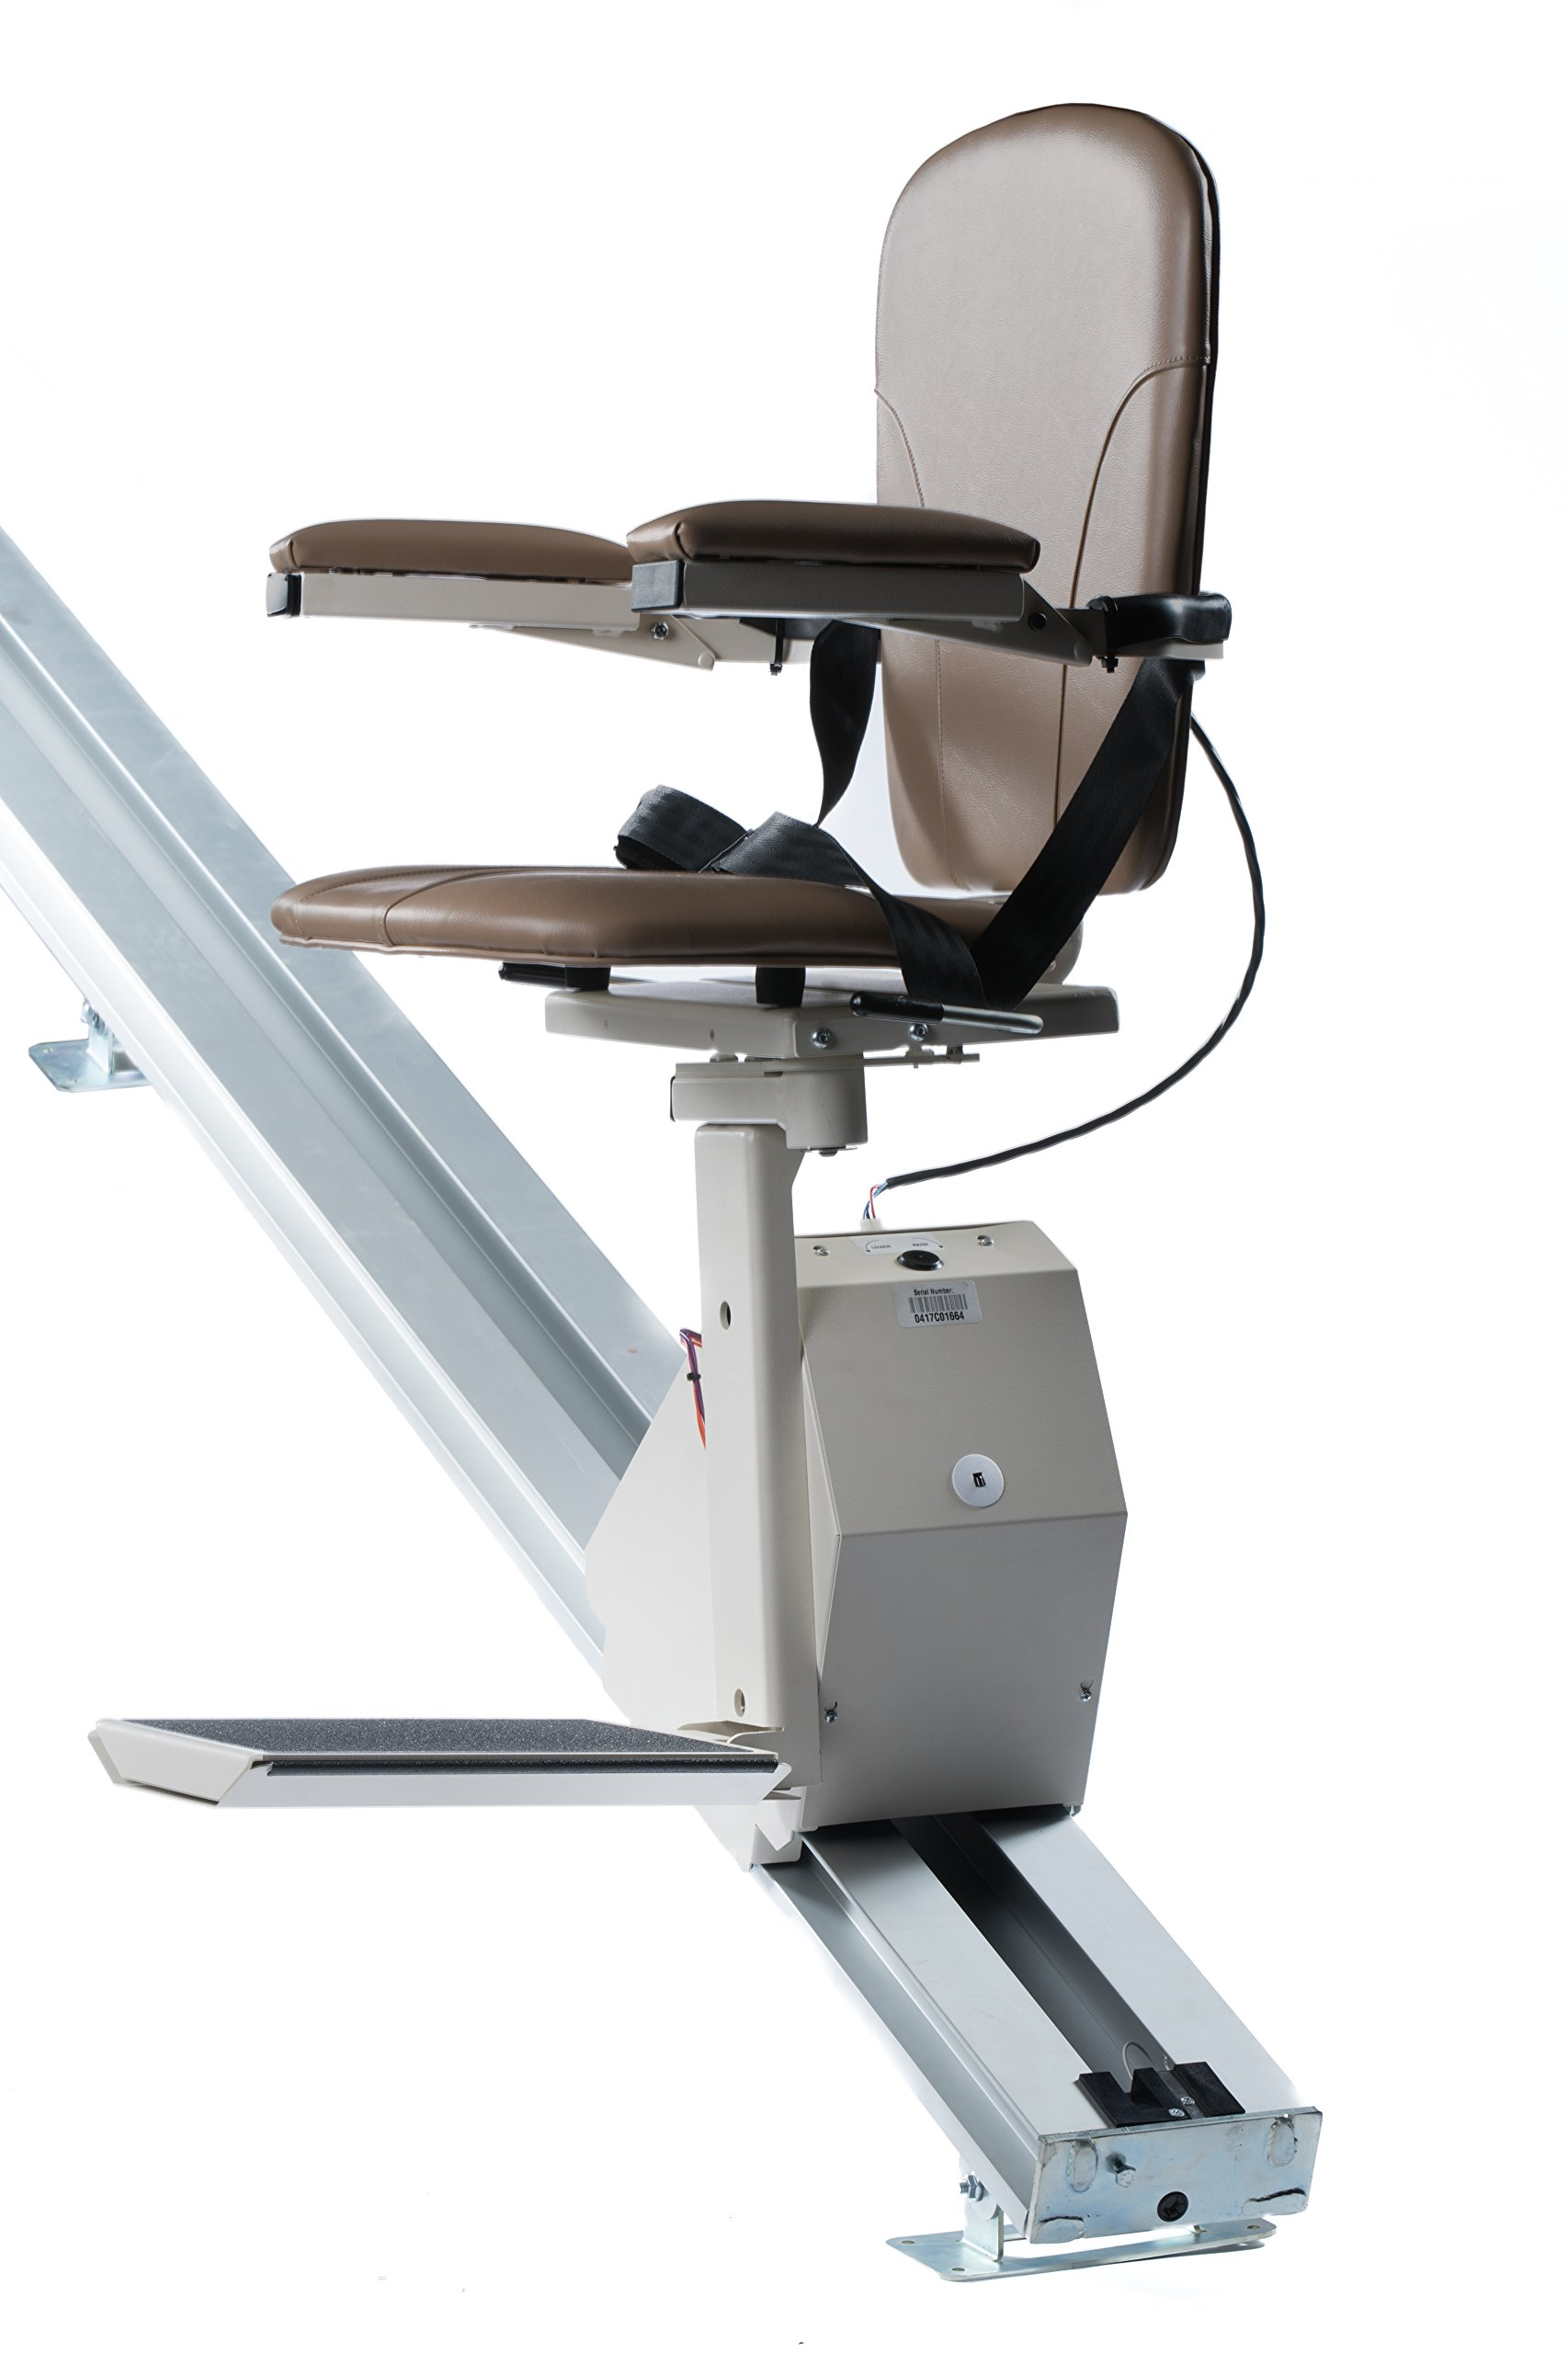 Universal Stair Lift - 350lb Capacity - Folds Flat to Wall - Includes Warranty by Universal Lifts